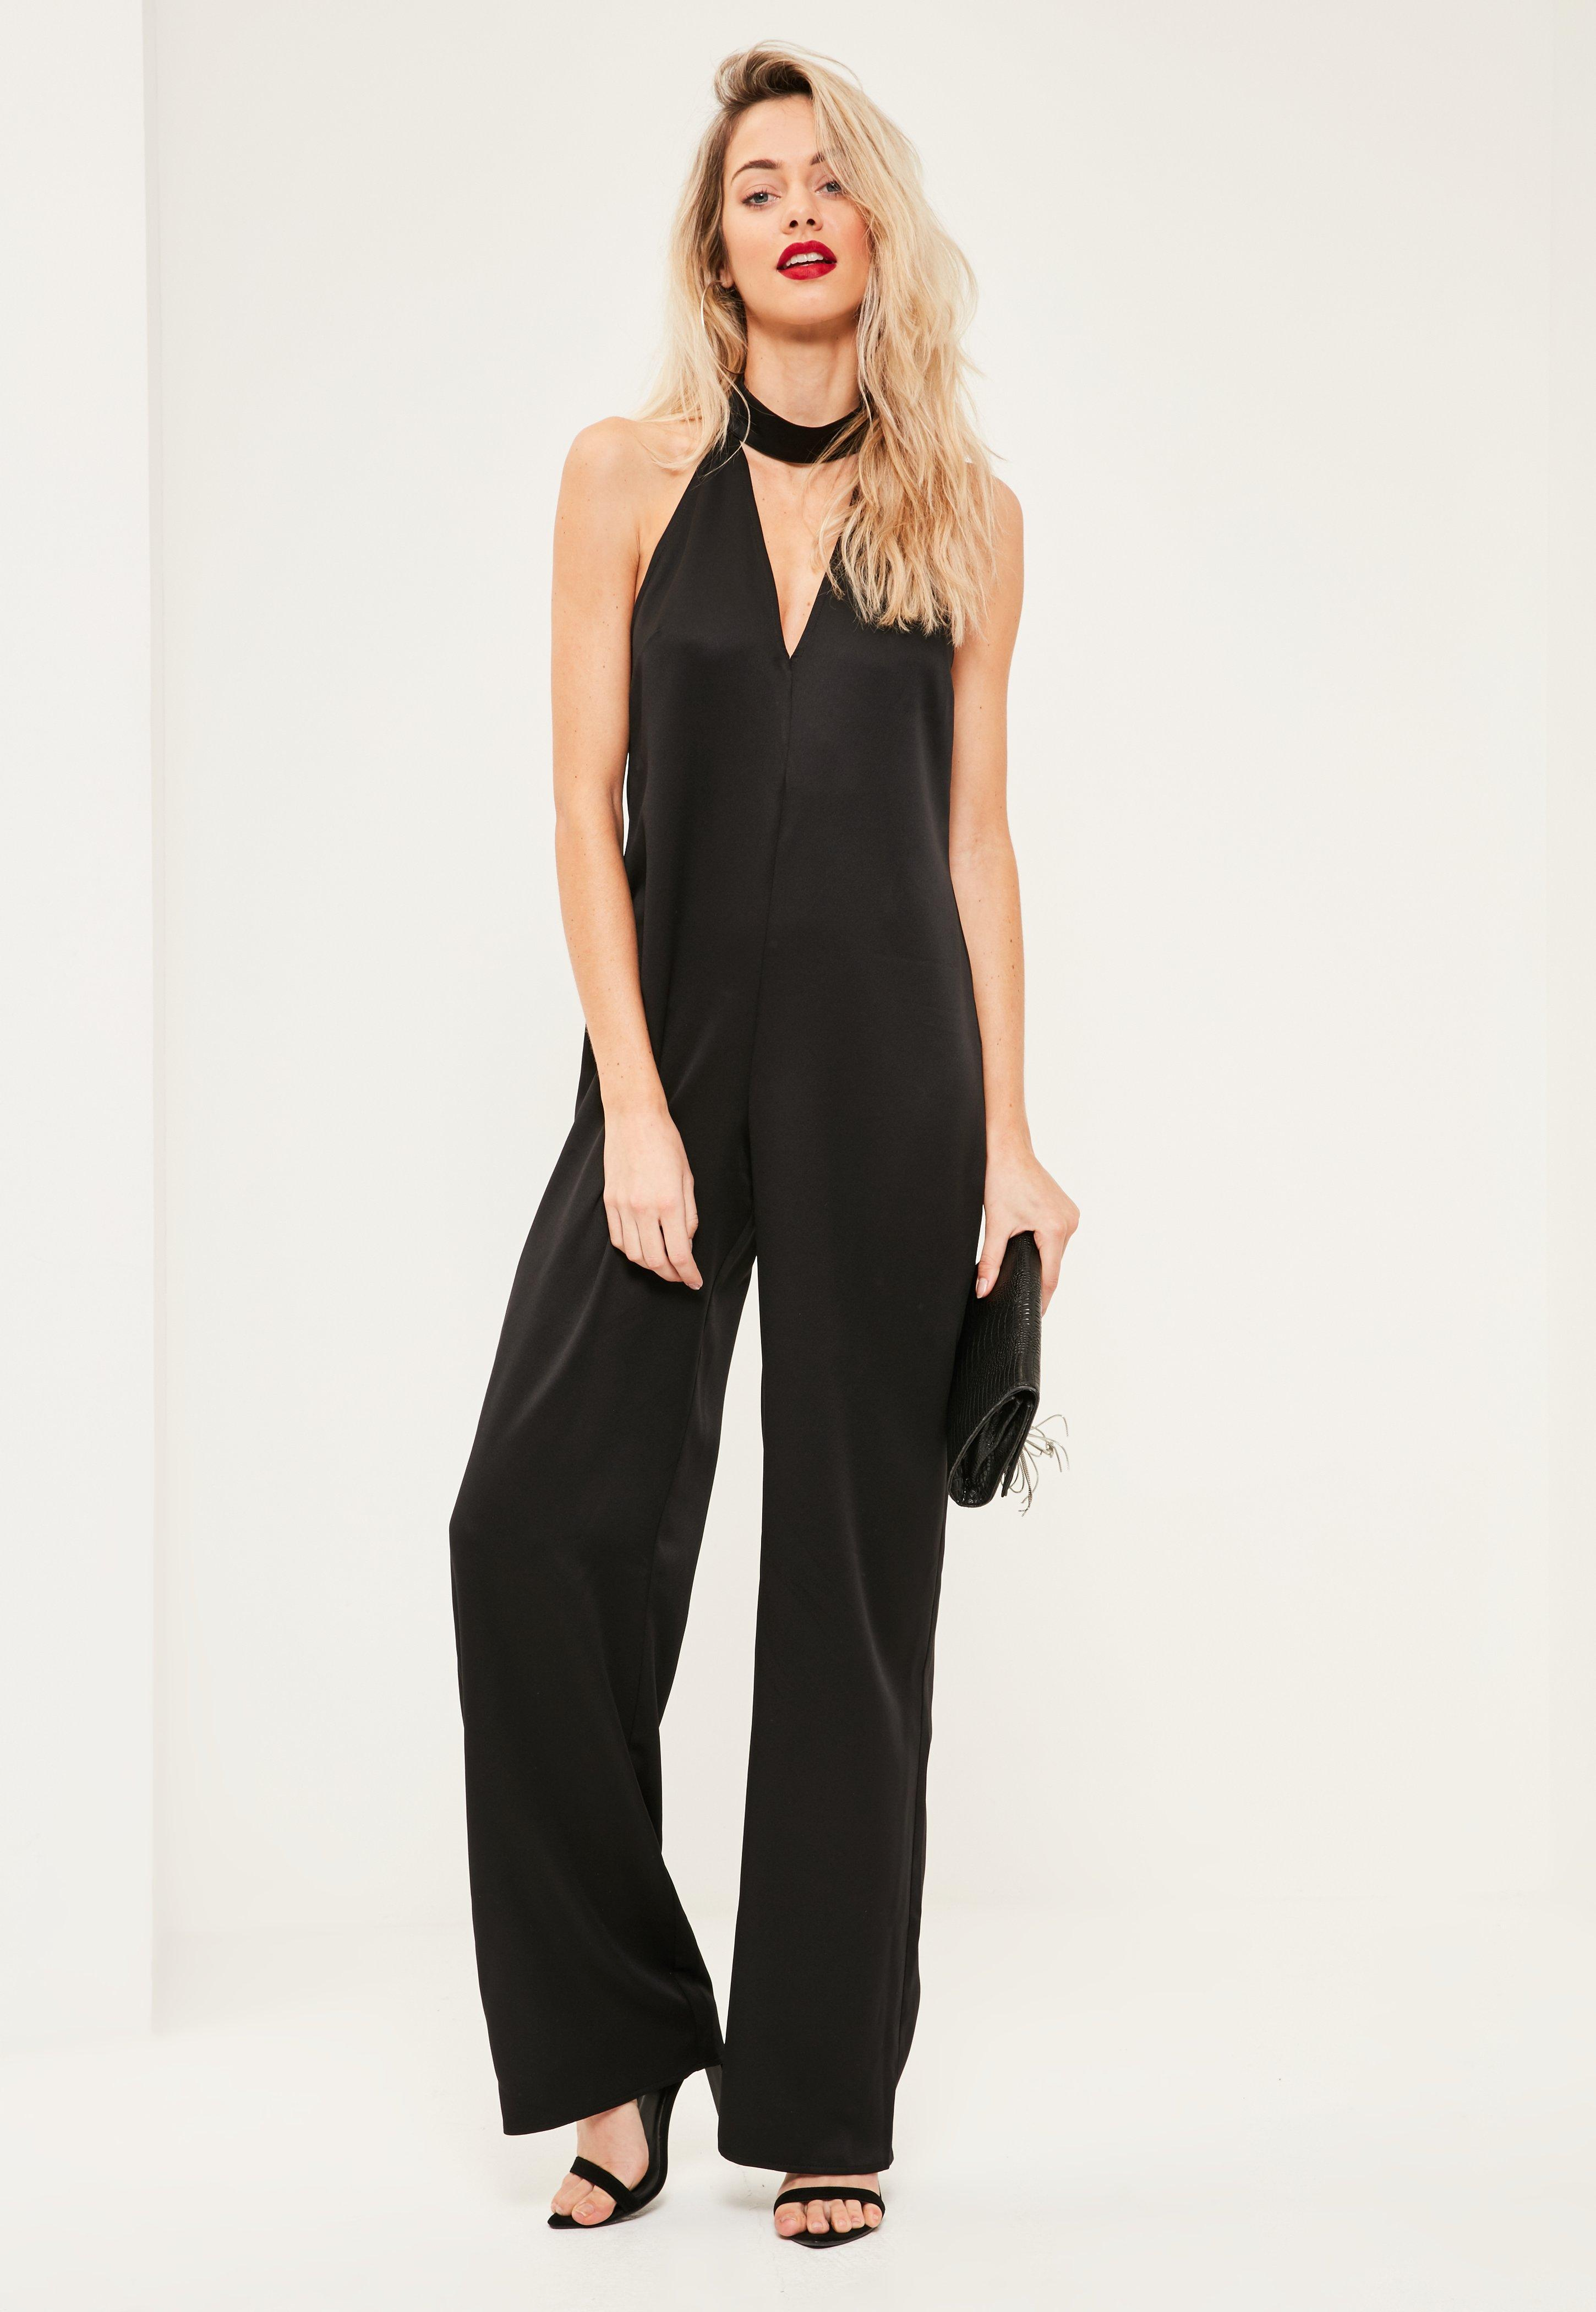 0caf3df378d6 Lyst - Missguided Tall Black Choker Neck Satin Jumpsuit in Black